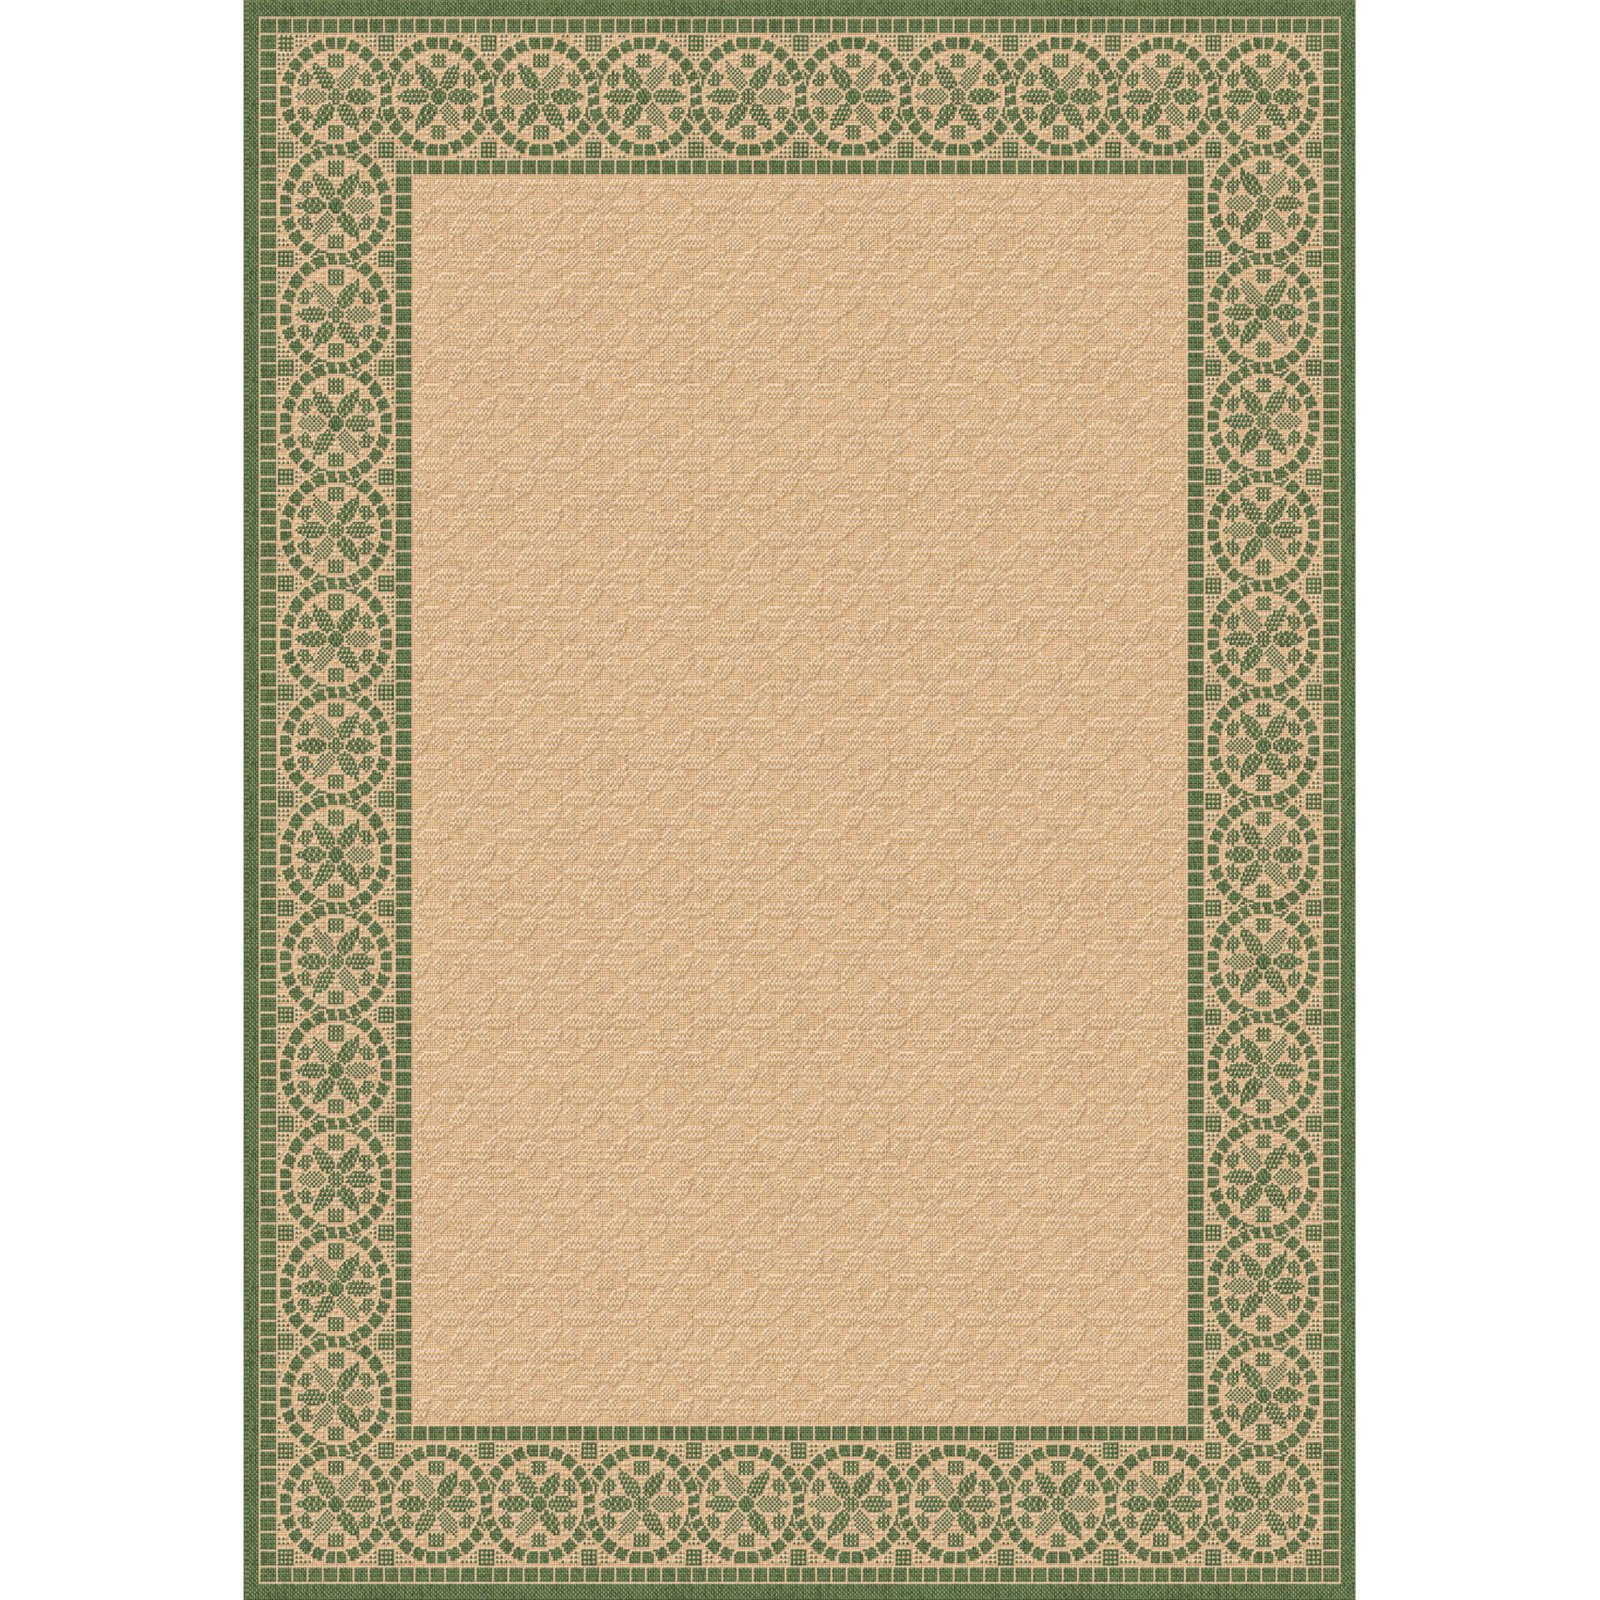 Dynamic Rugs Piazza Mosaic Indoor/Outdoor Area Rug - Natural/Green